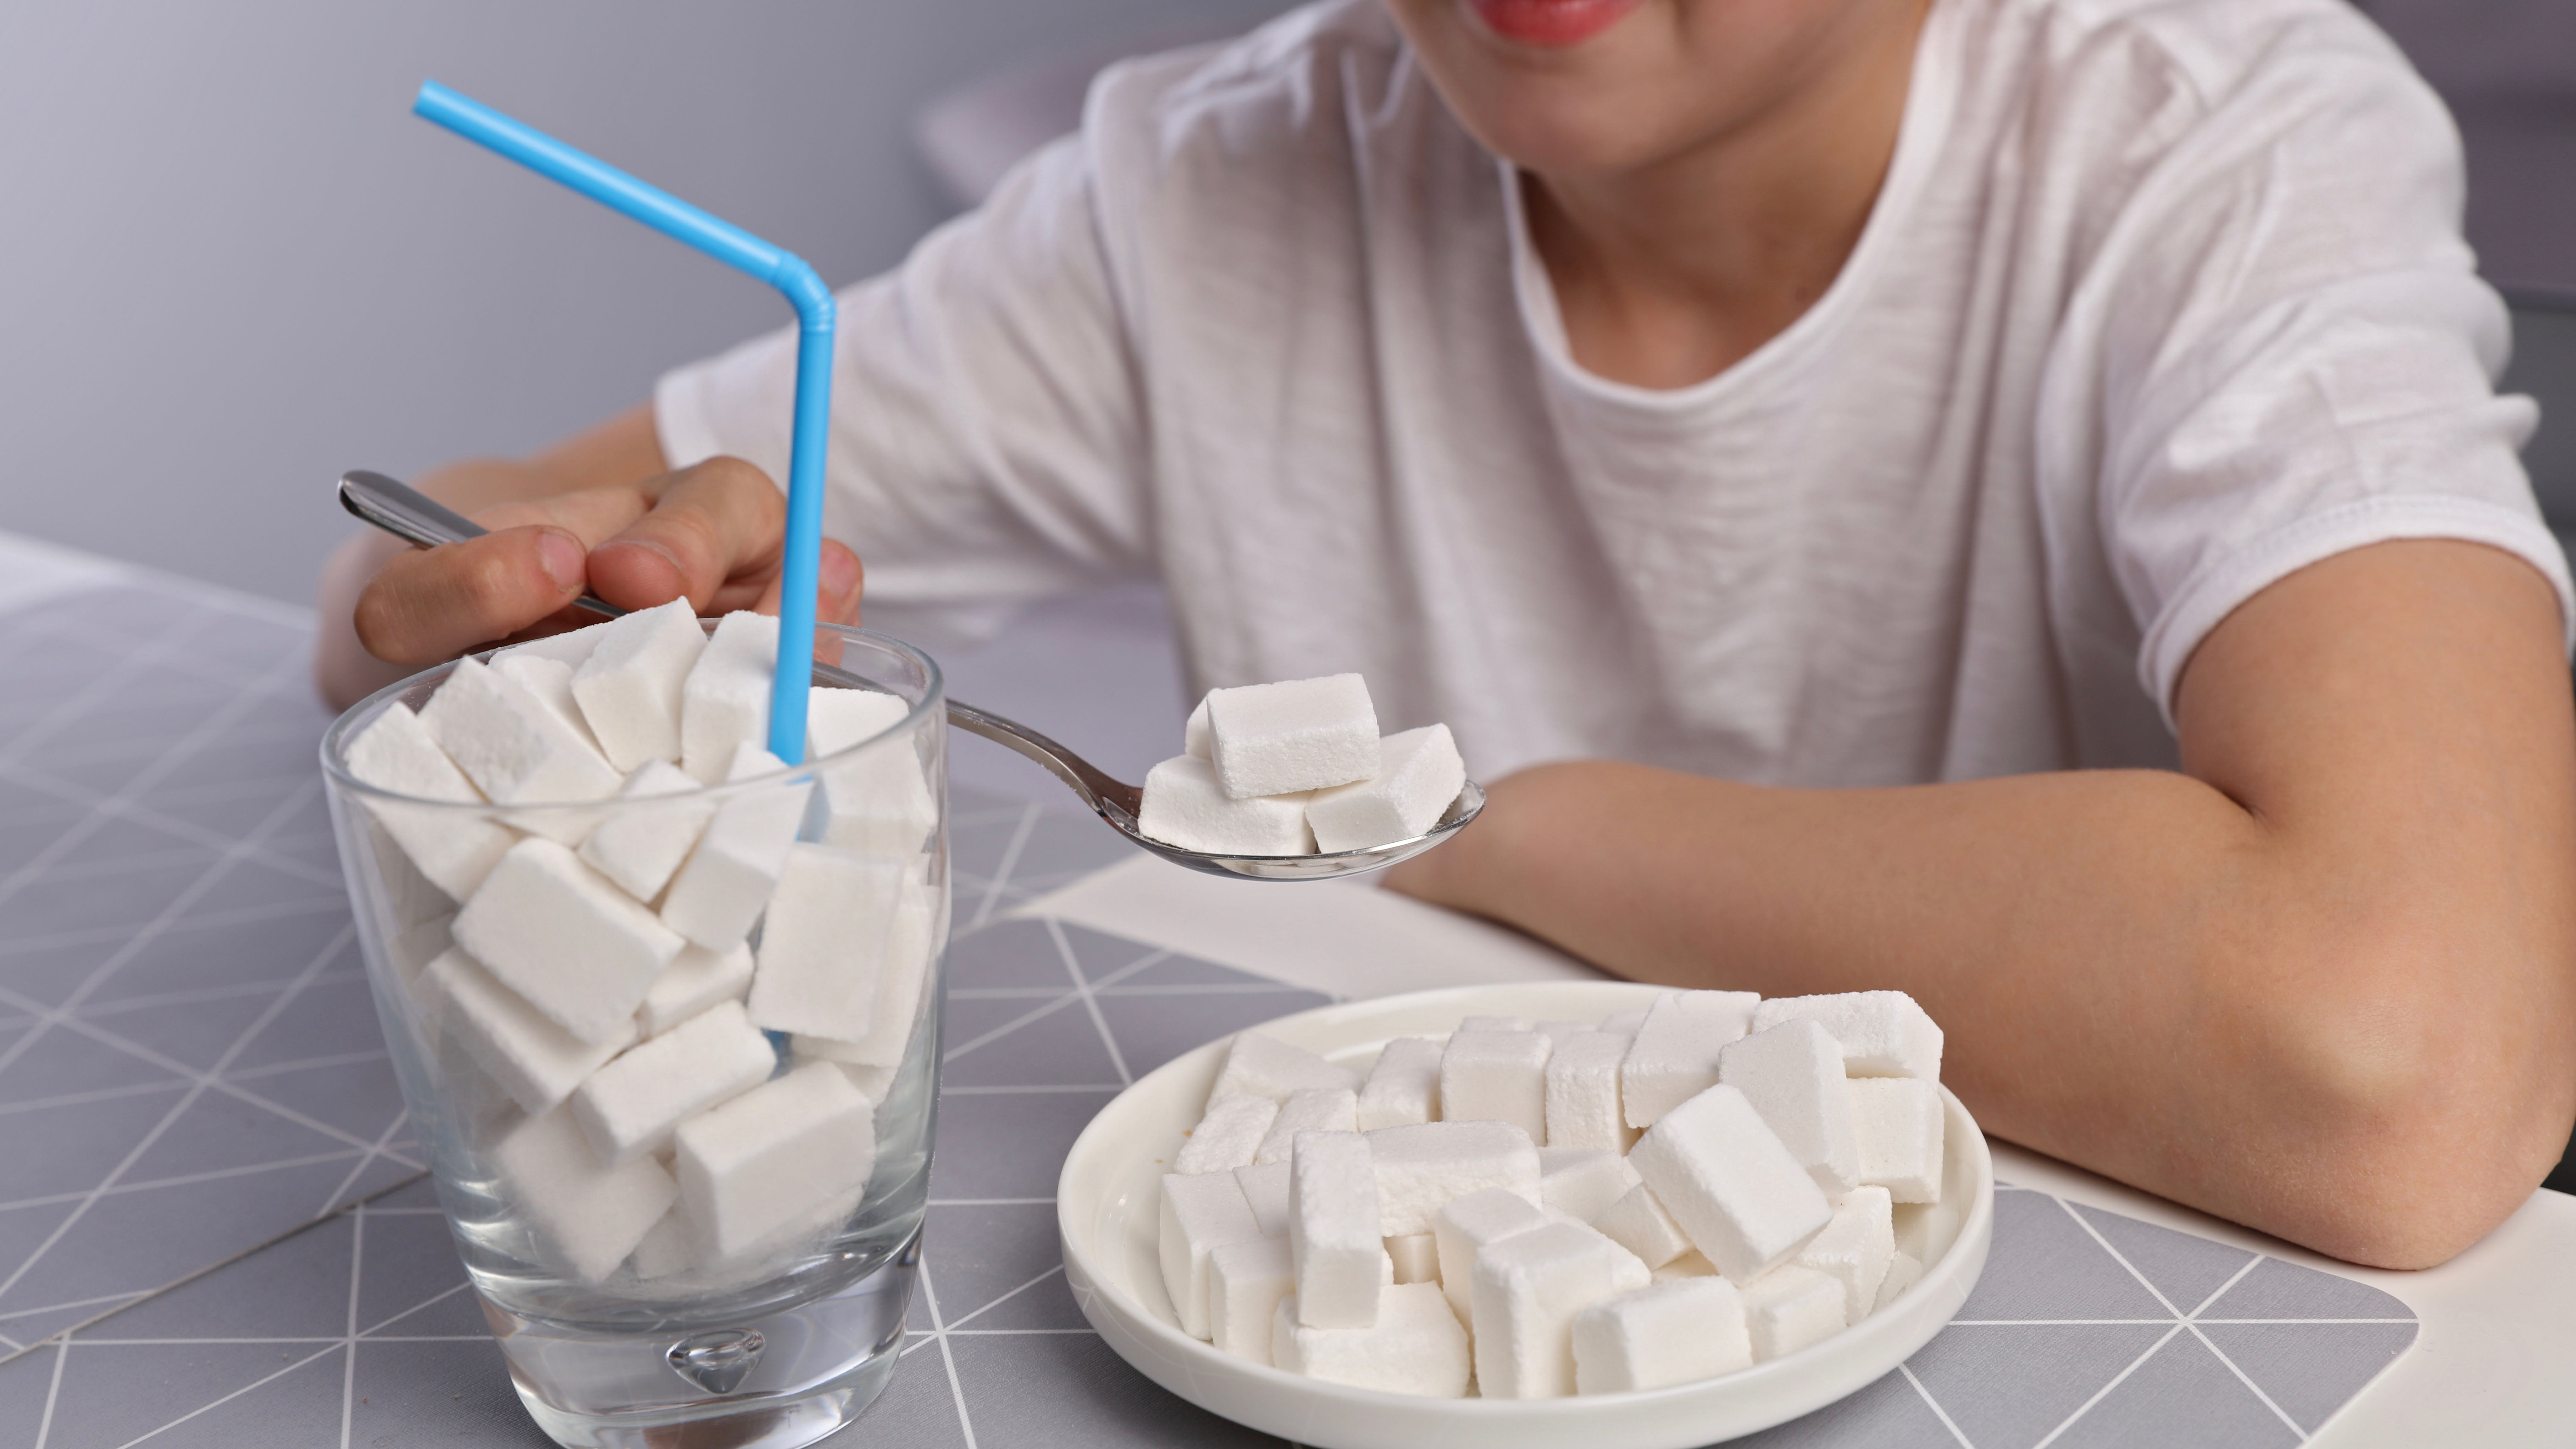 Simple carbohydrates,food with hidden sugar, kids and sugar addiction, diabetes. Children bad eating habits, health care concept